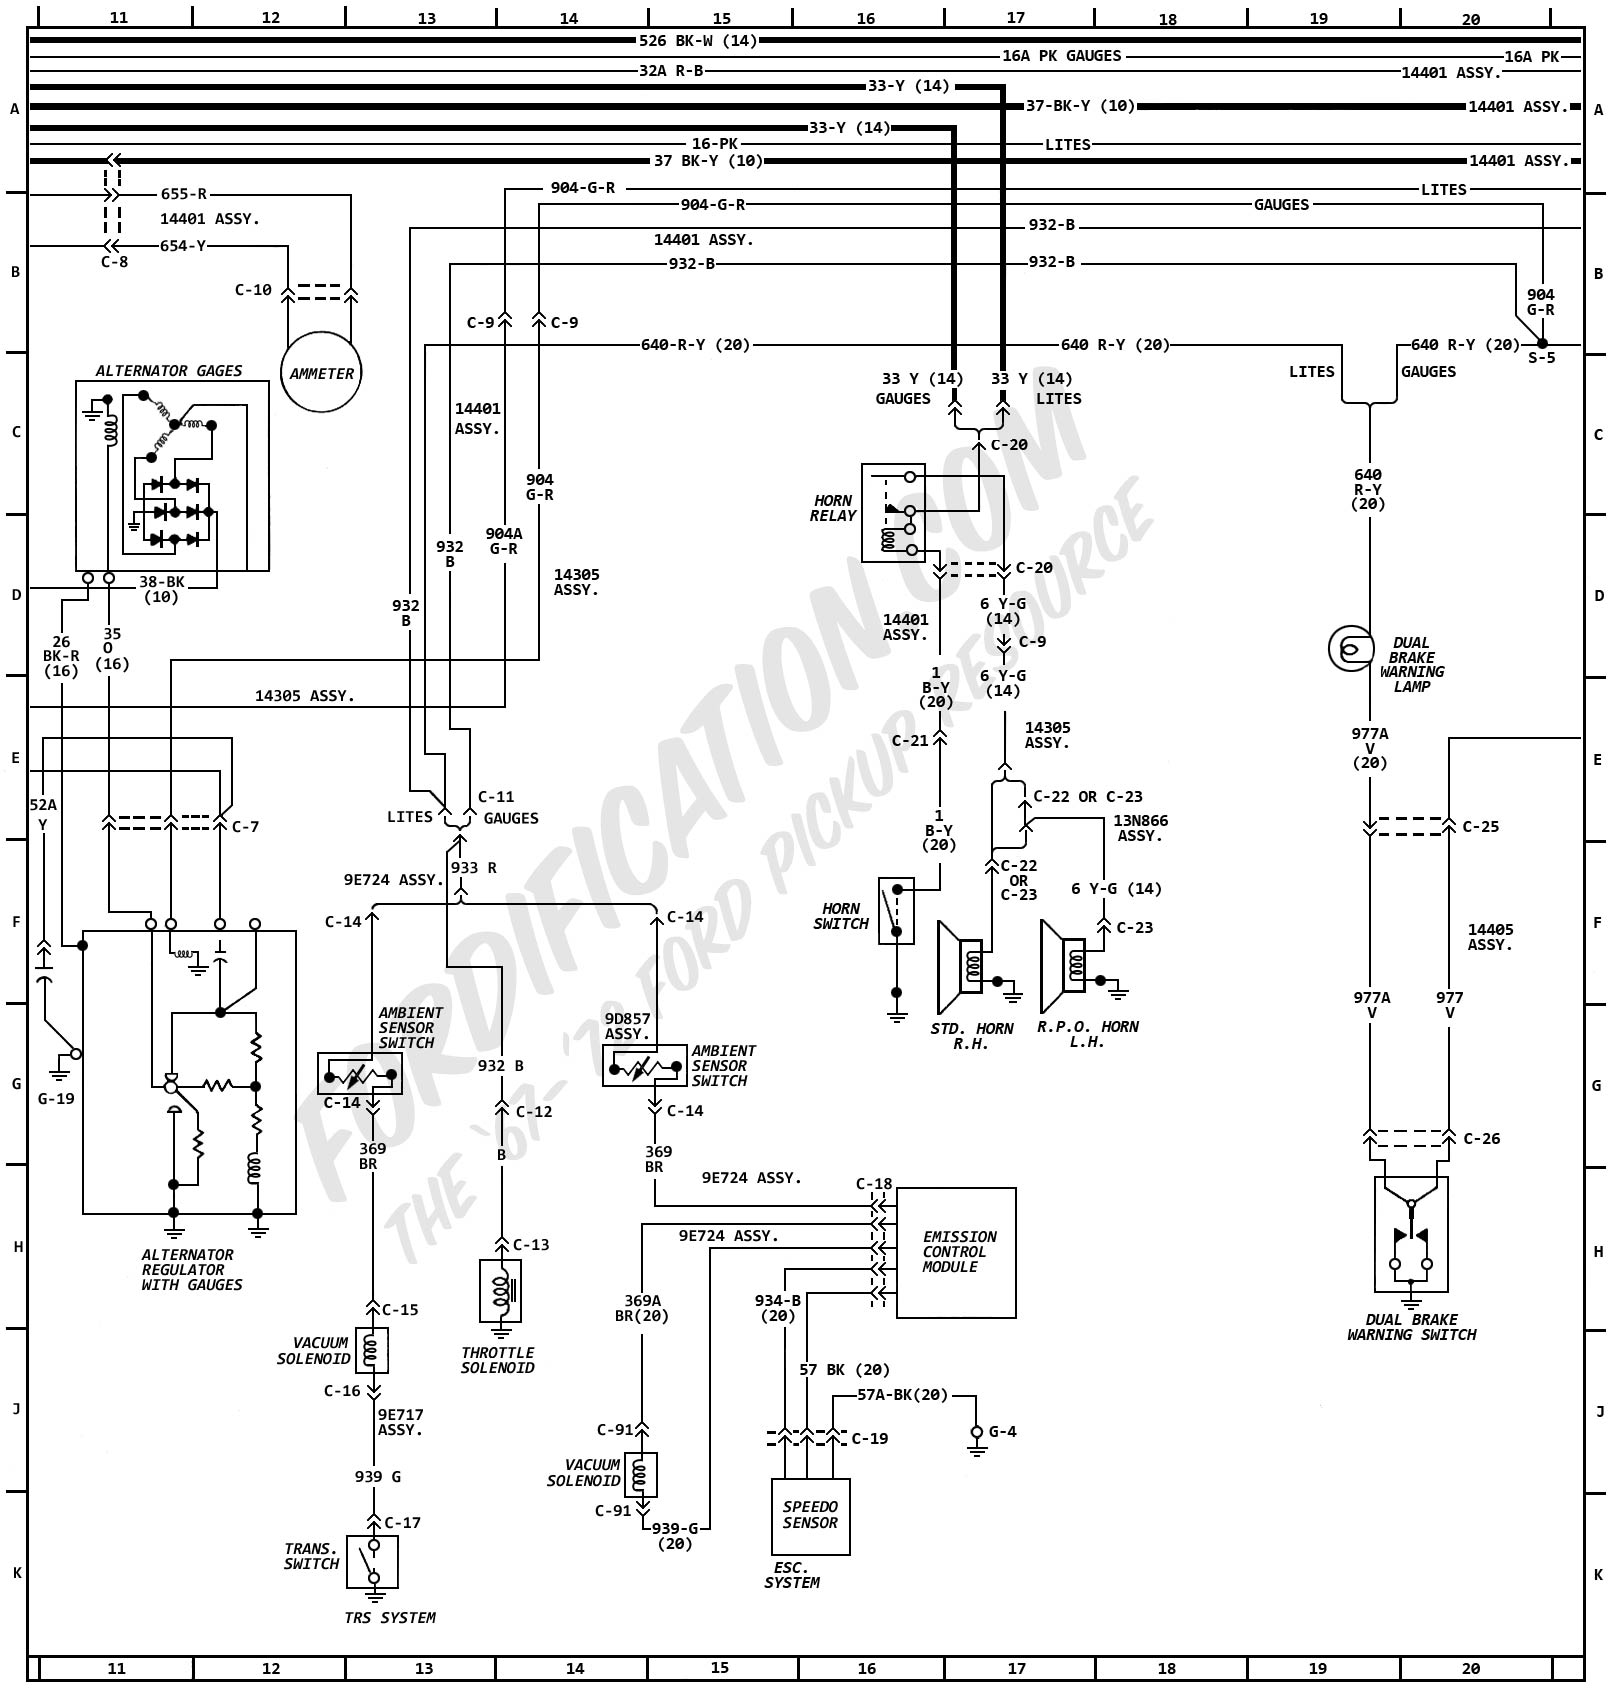 1972 Ford F 100 Thru 350 Master Wiring Diagram Picture to